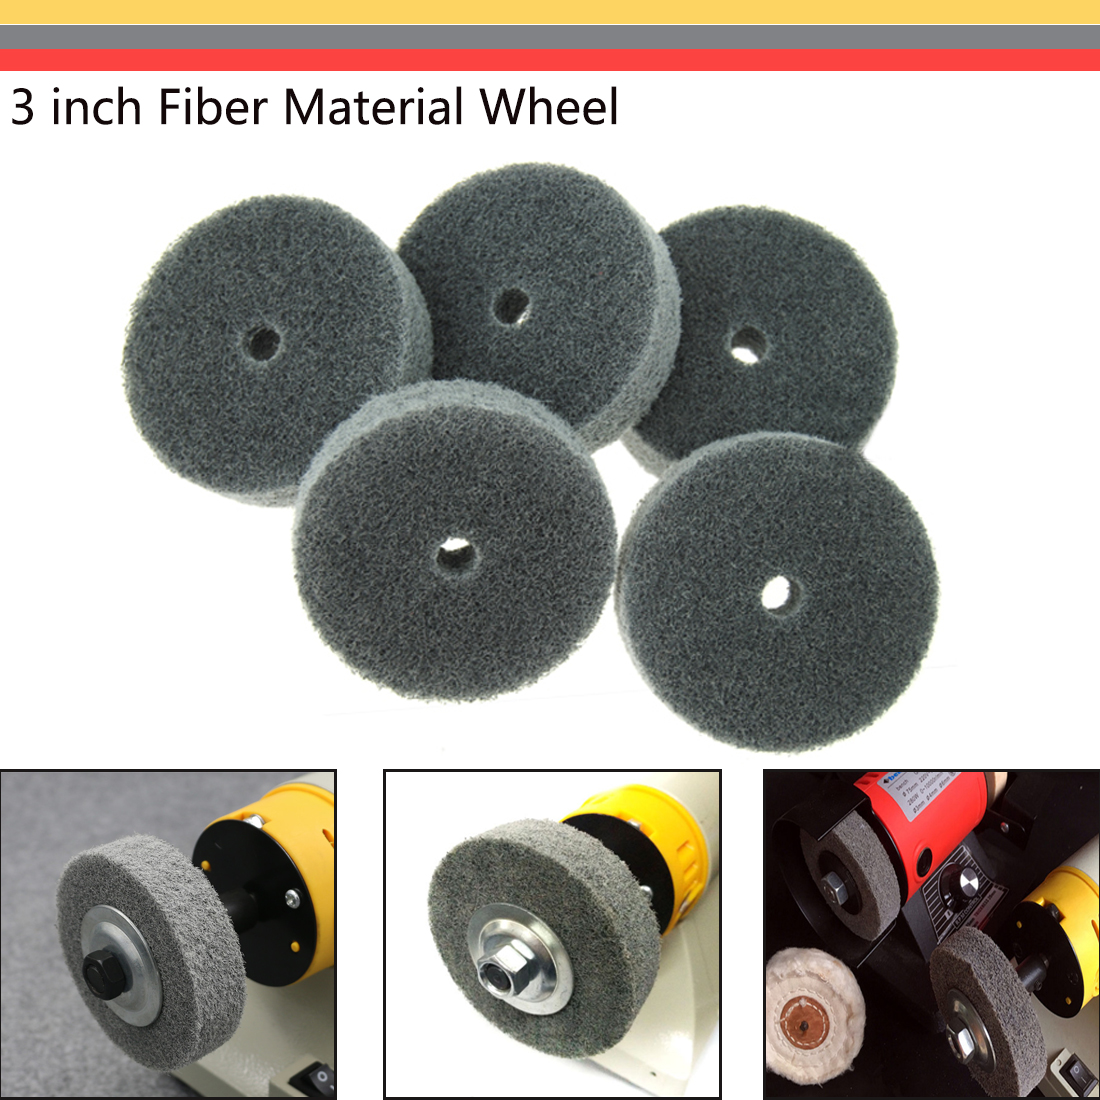 Marble Grinding Home Polishing Car Accessories Polishing 3 Inch Nylon Fiber Wheel Grinding Accessories Preferred